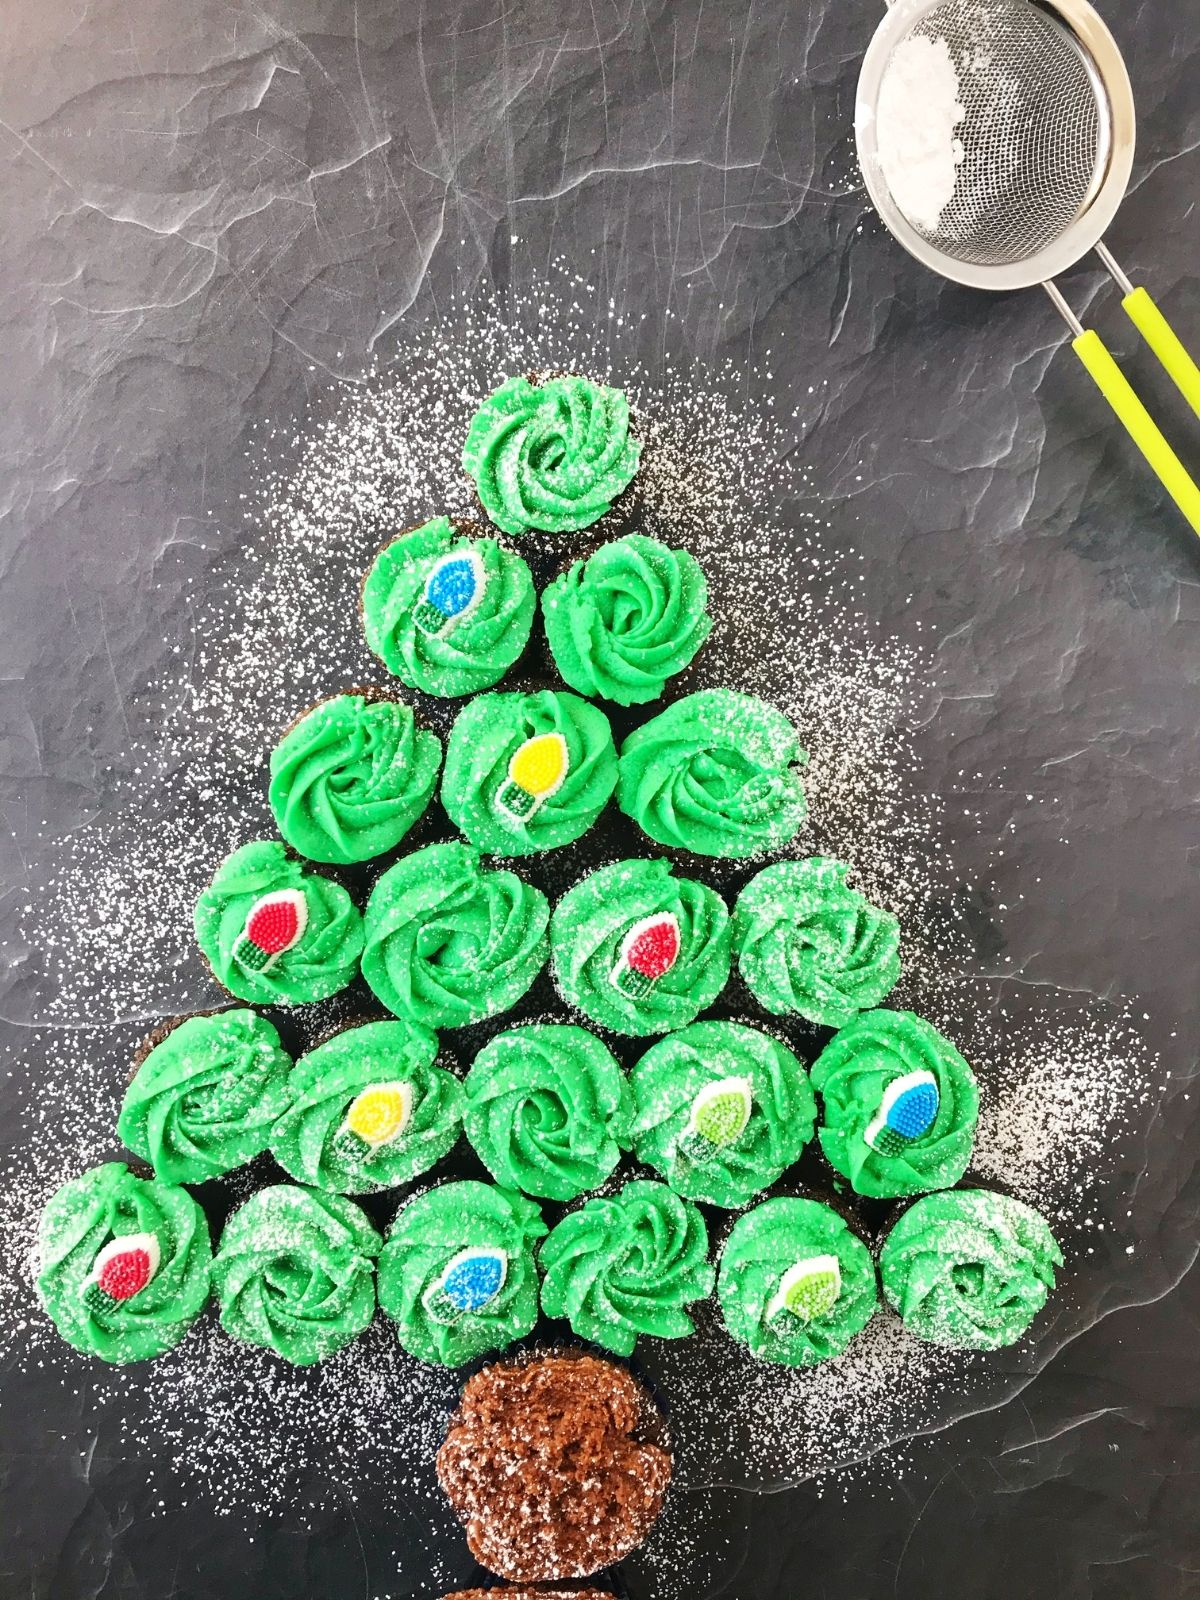 cupcakes arranged in the shape of a tree with powdered sugar dusted over the top